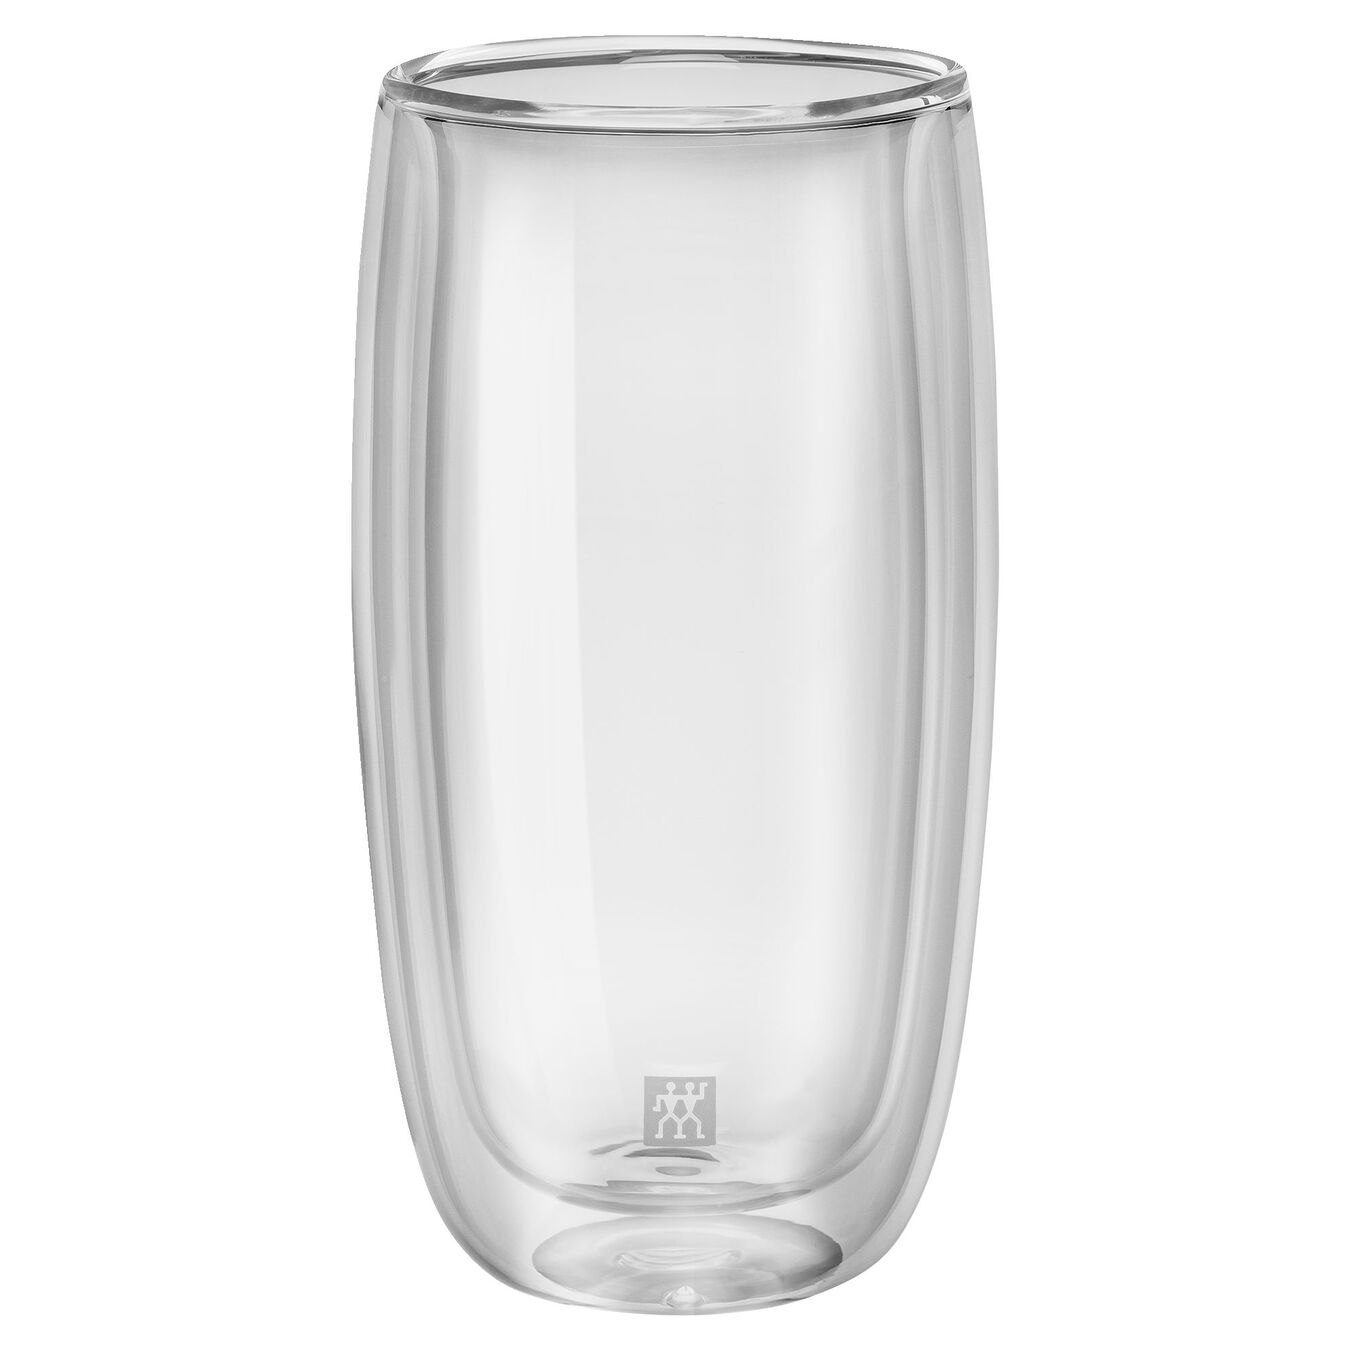 Softdrinkglasset 475 ml,,large 1